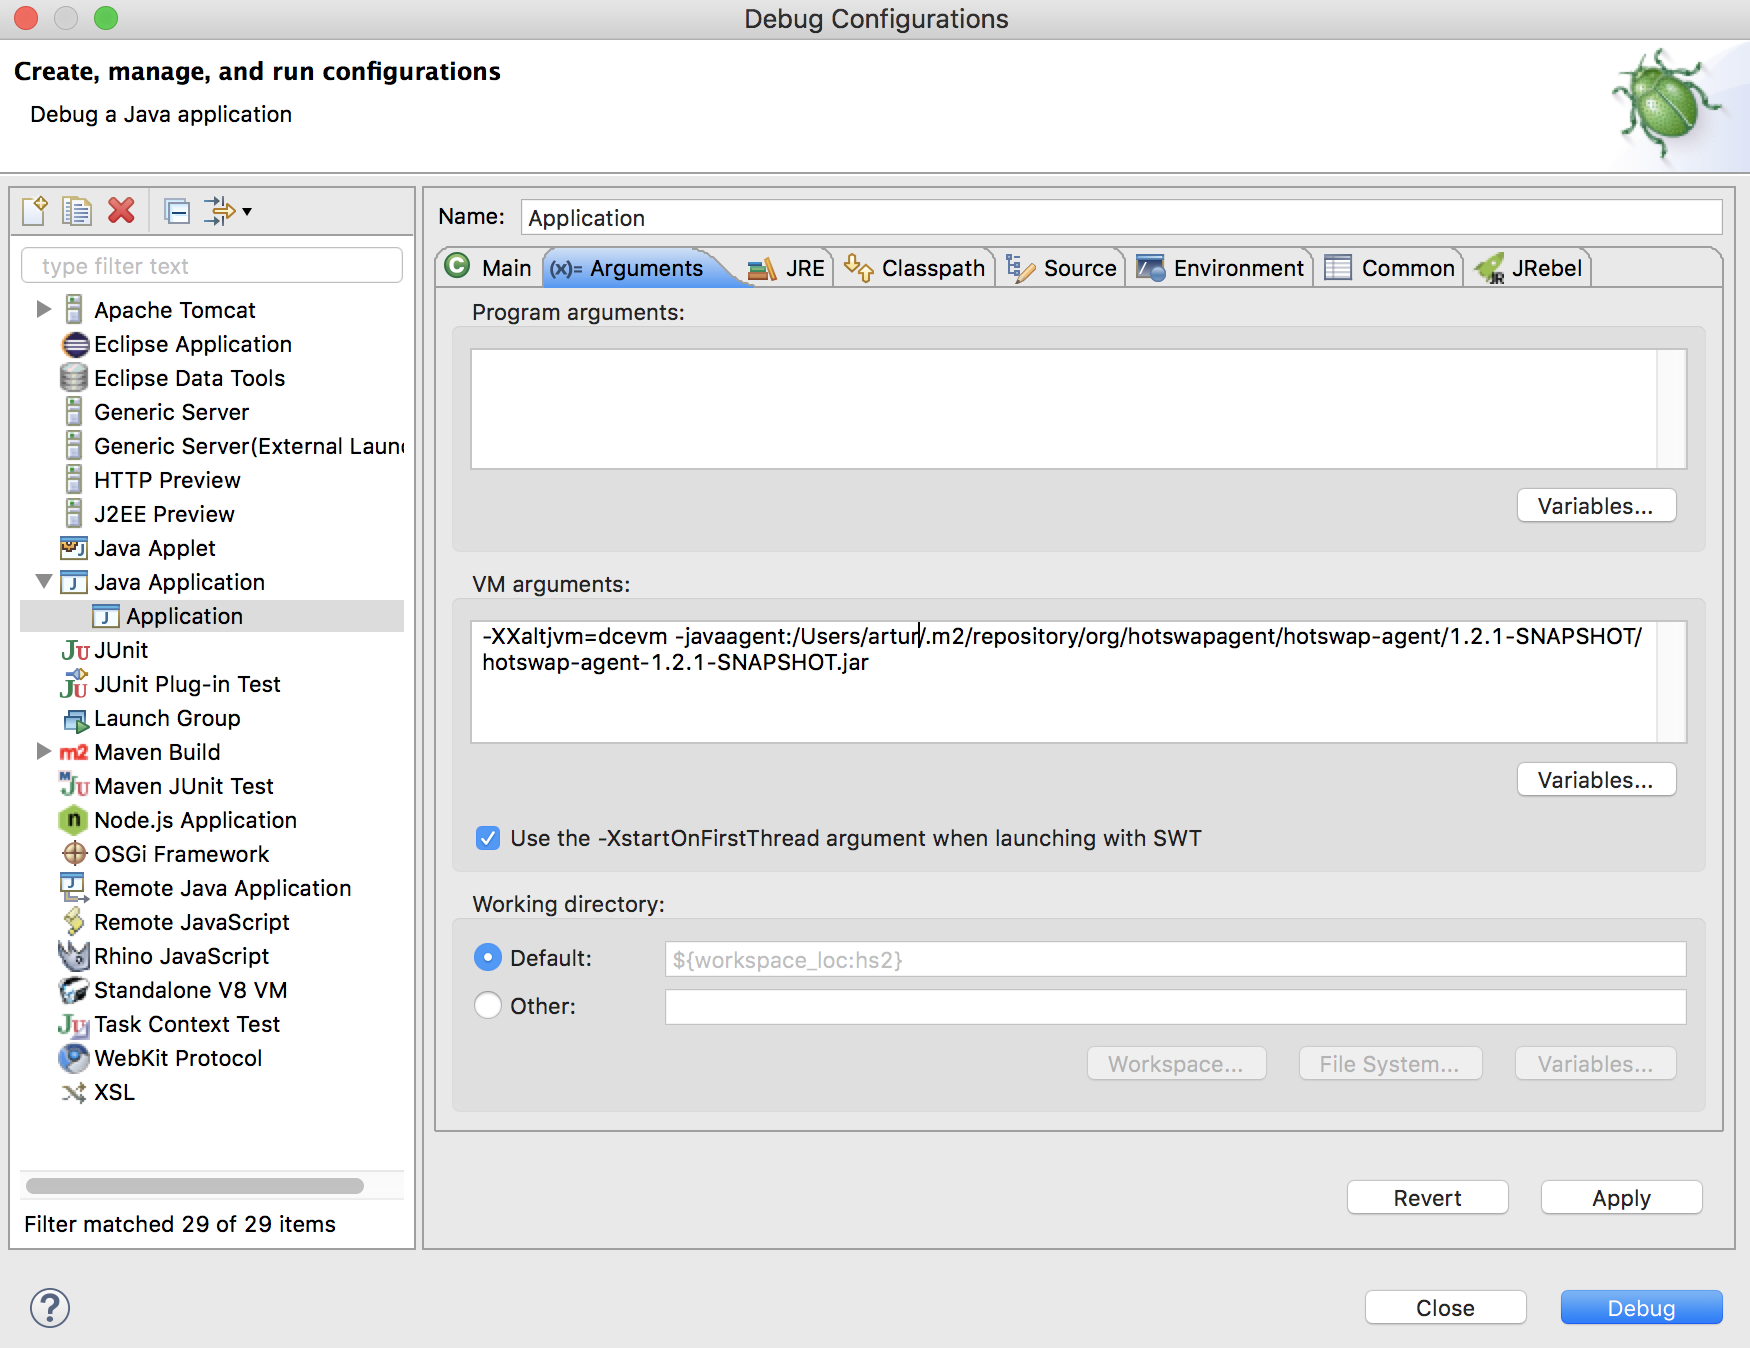 Screenshot of the Debug Configurations dialog in Eclipse